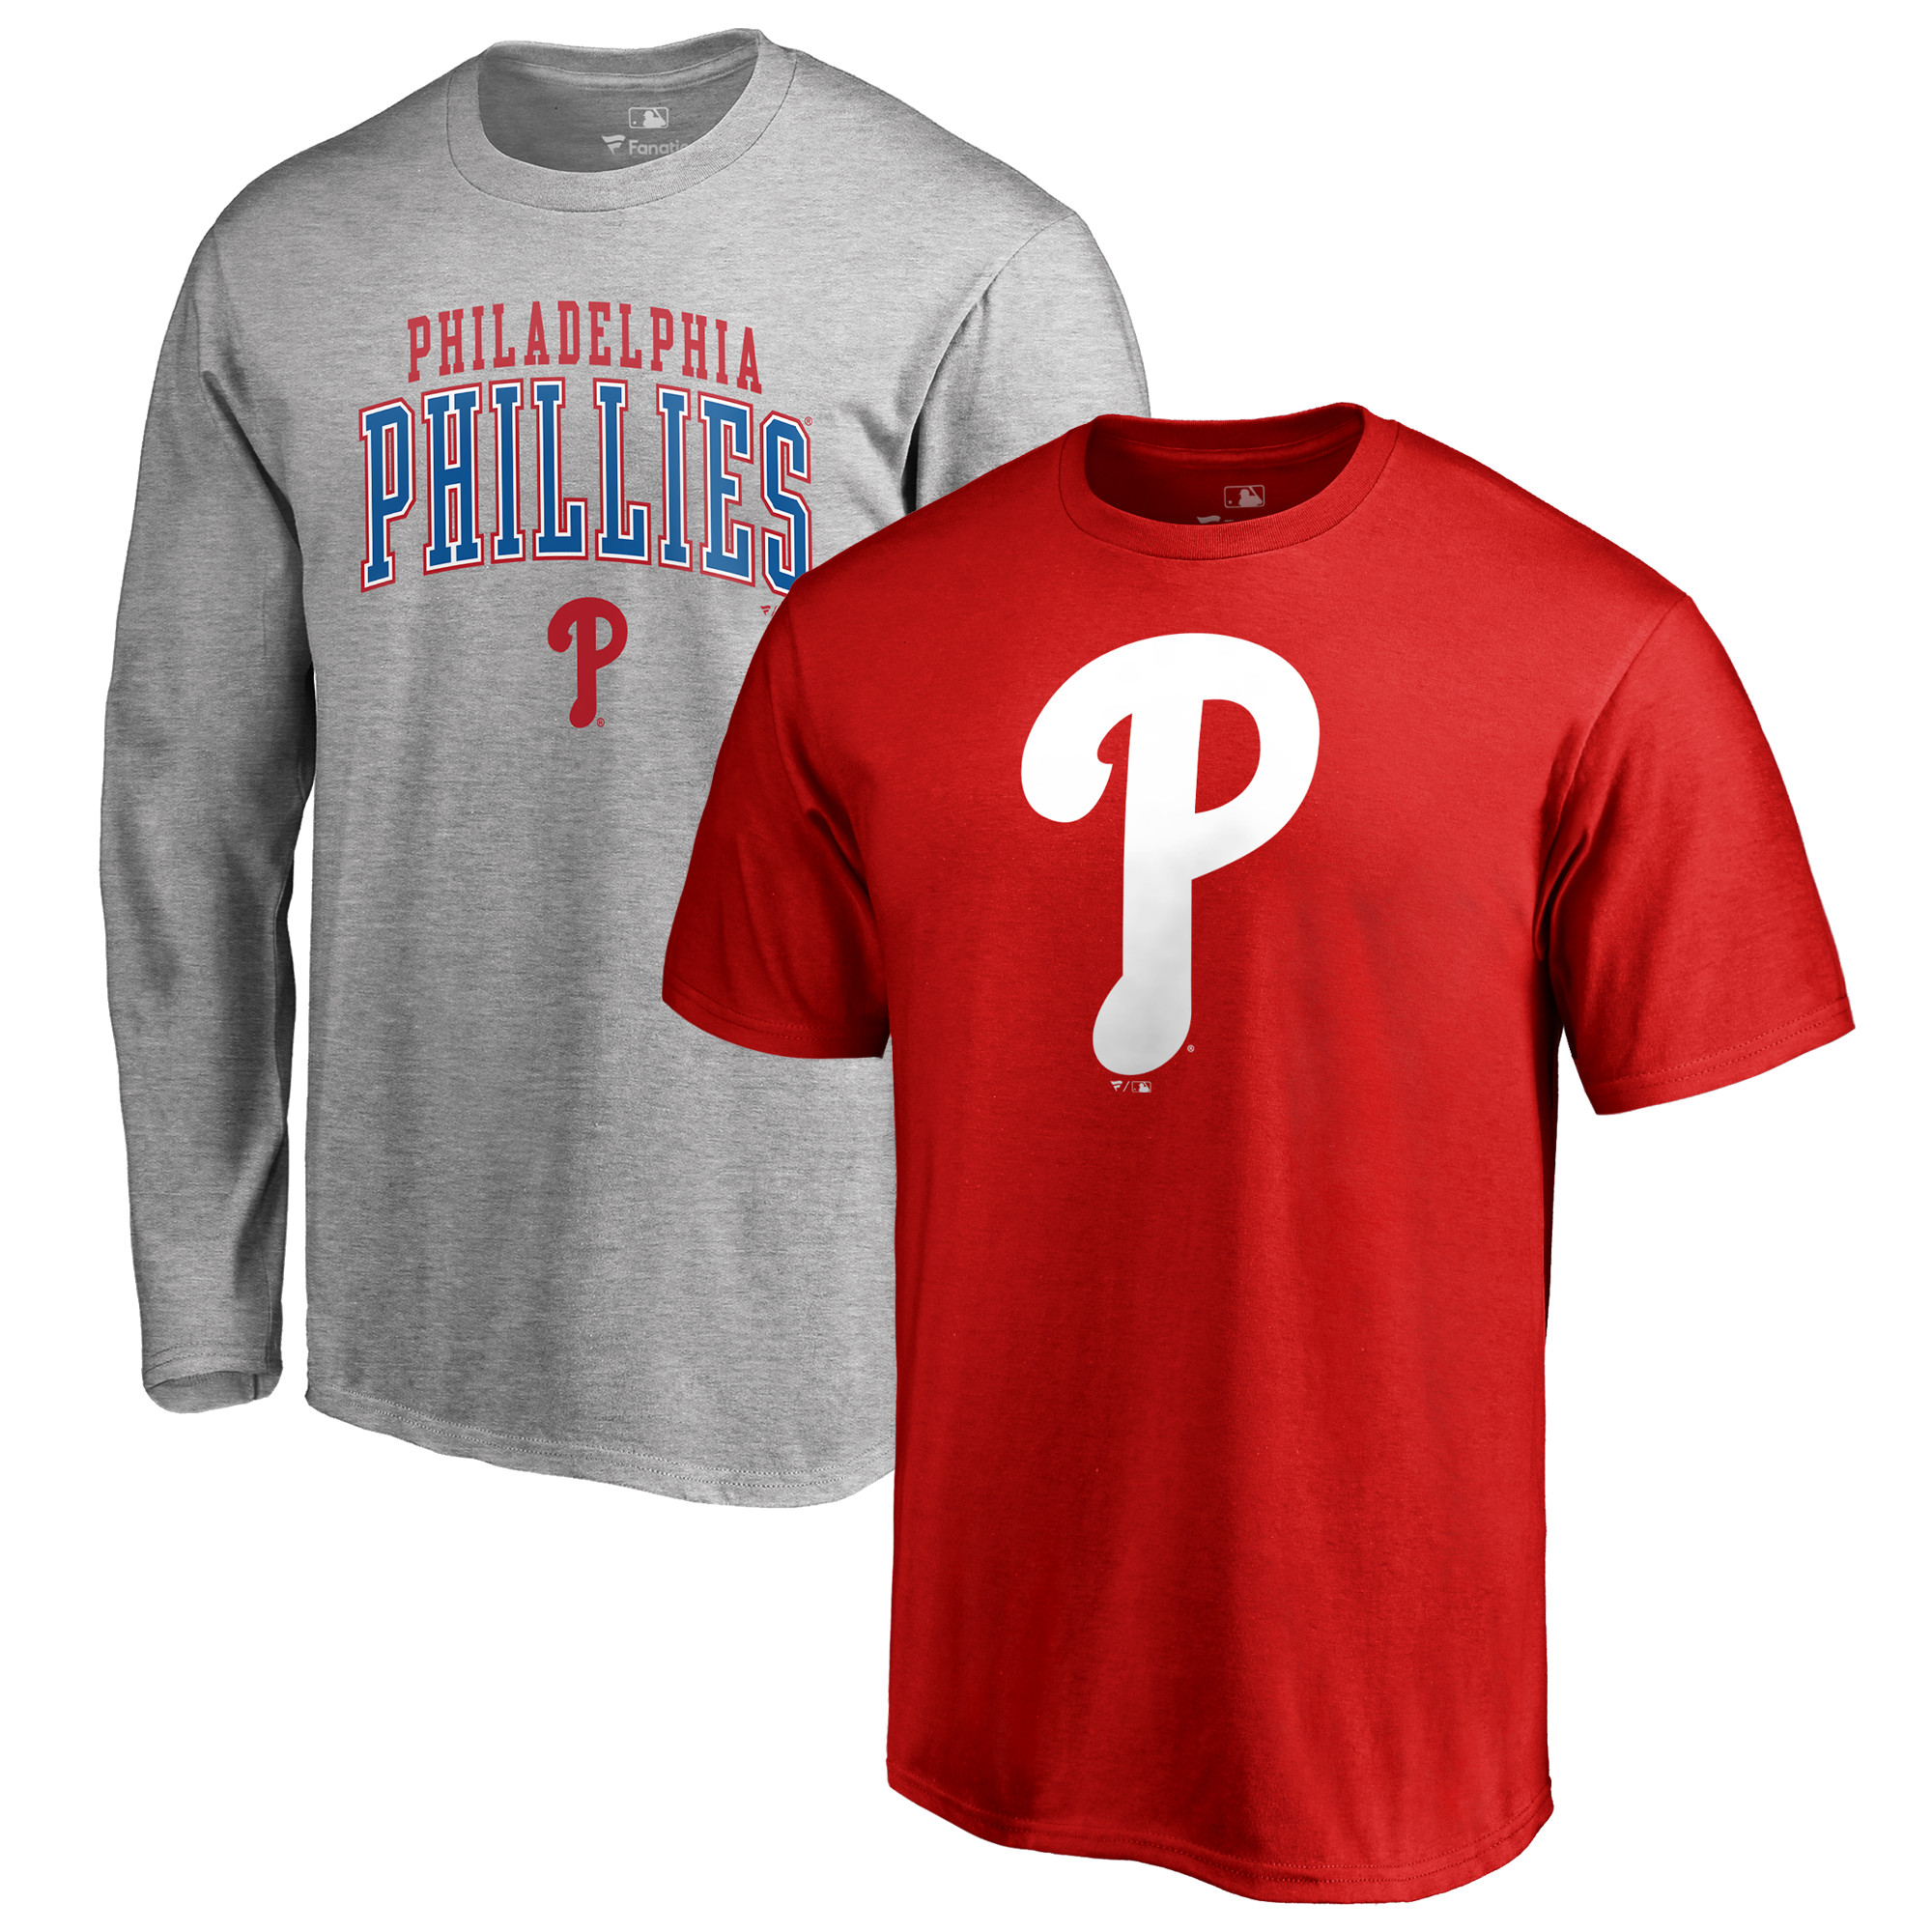 Philadelphia Phillies Fanatics Branded Big & Tall Long Sleeve & Short Sleeve T-Shirt Combo - Red/Gray